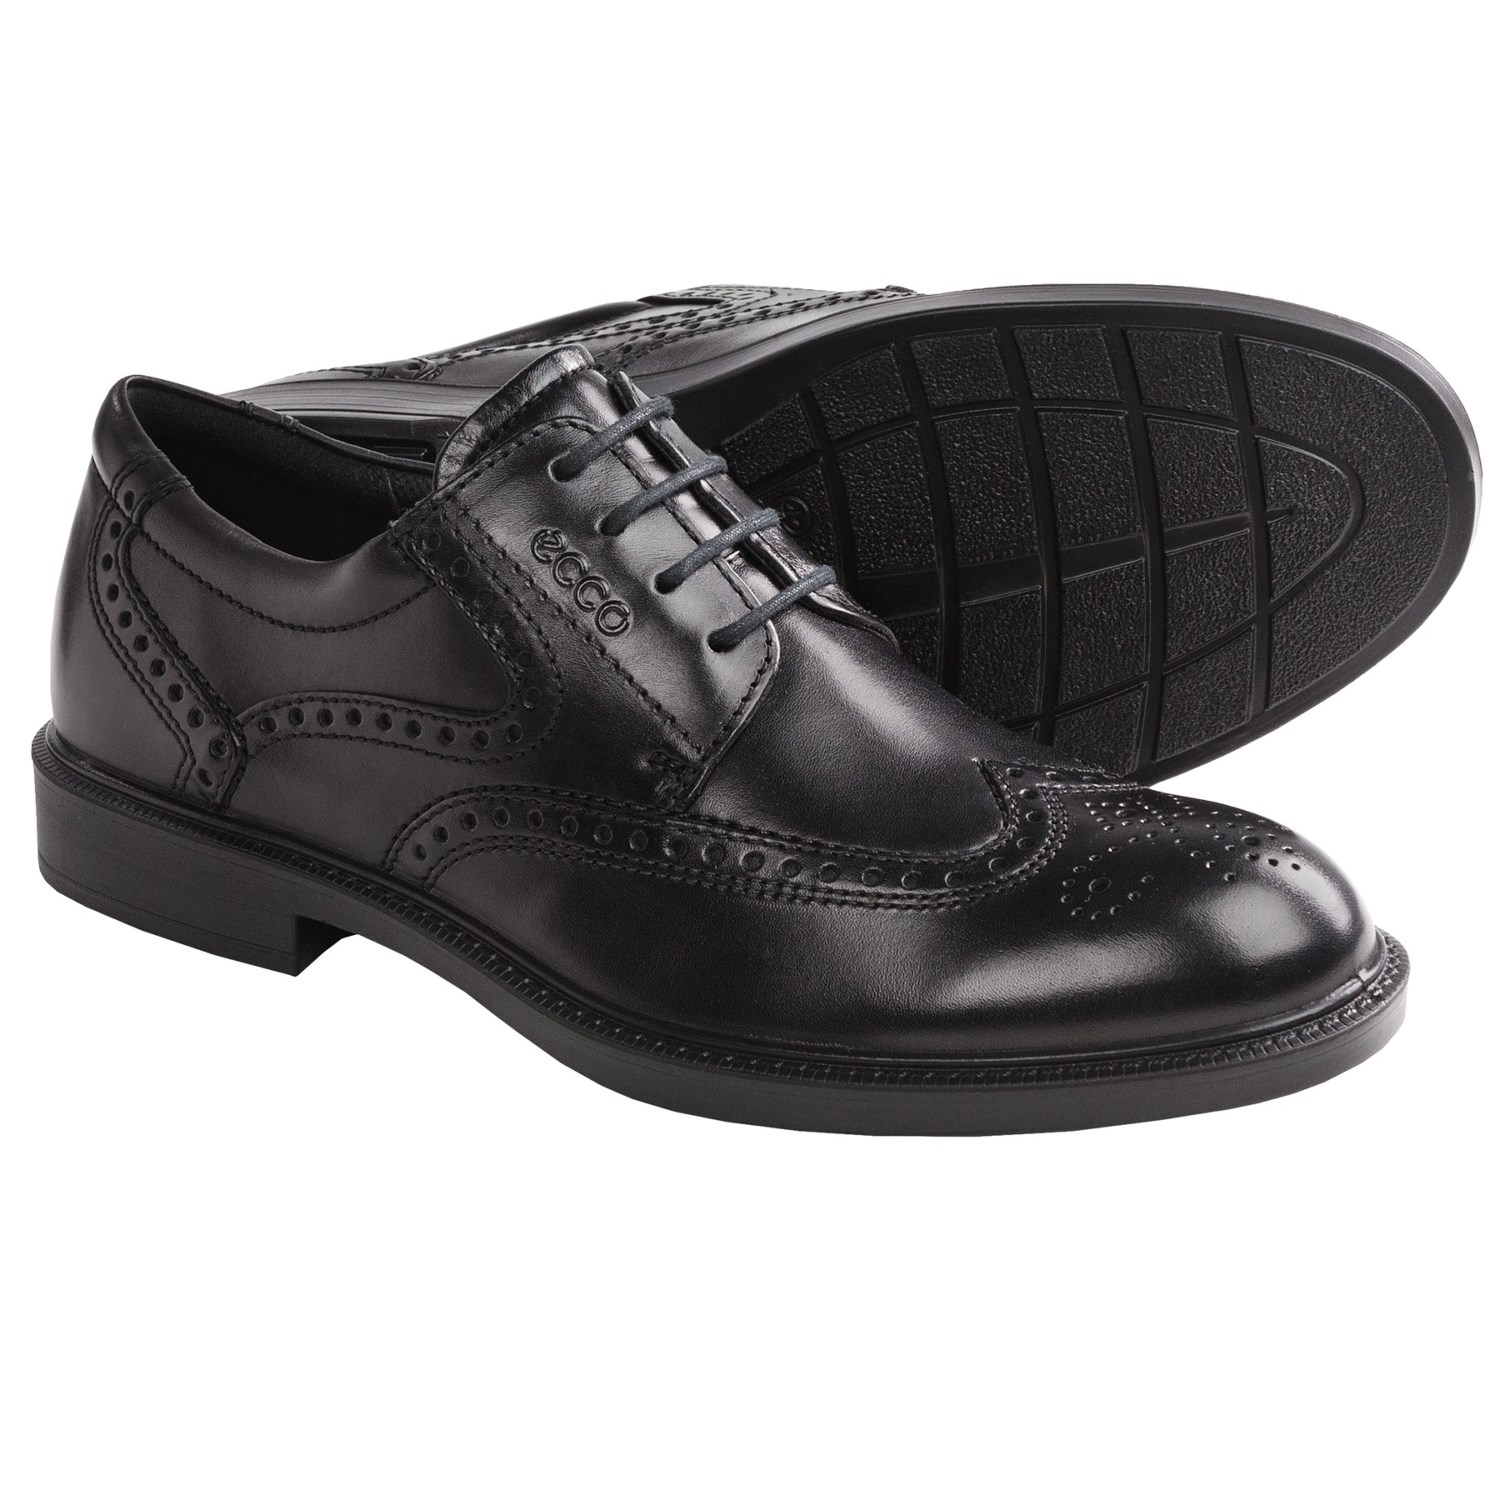 ECCO Atlanta Wingtip Oxford Shoes (For Men) - Save 47%